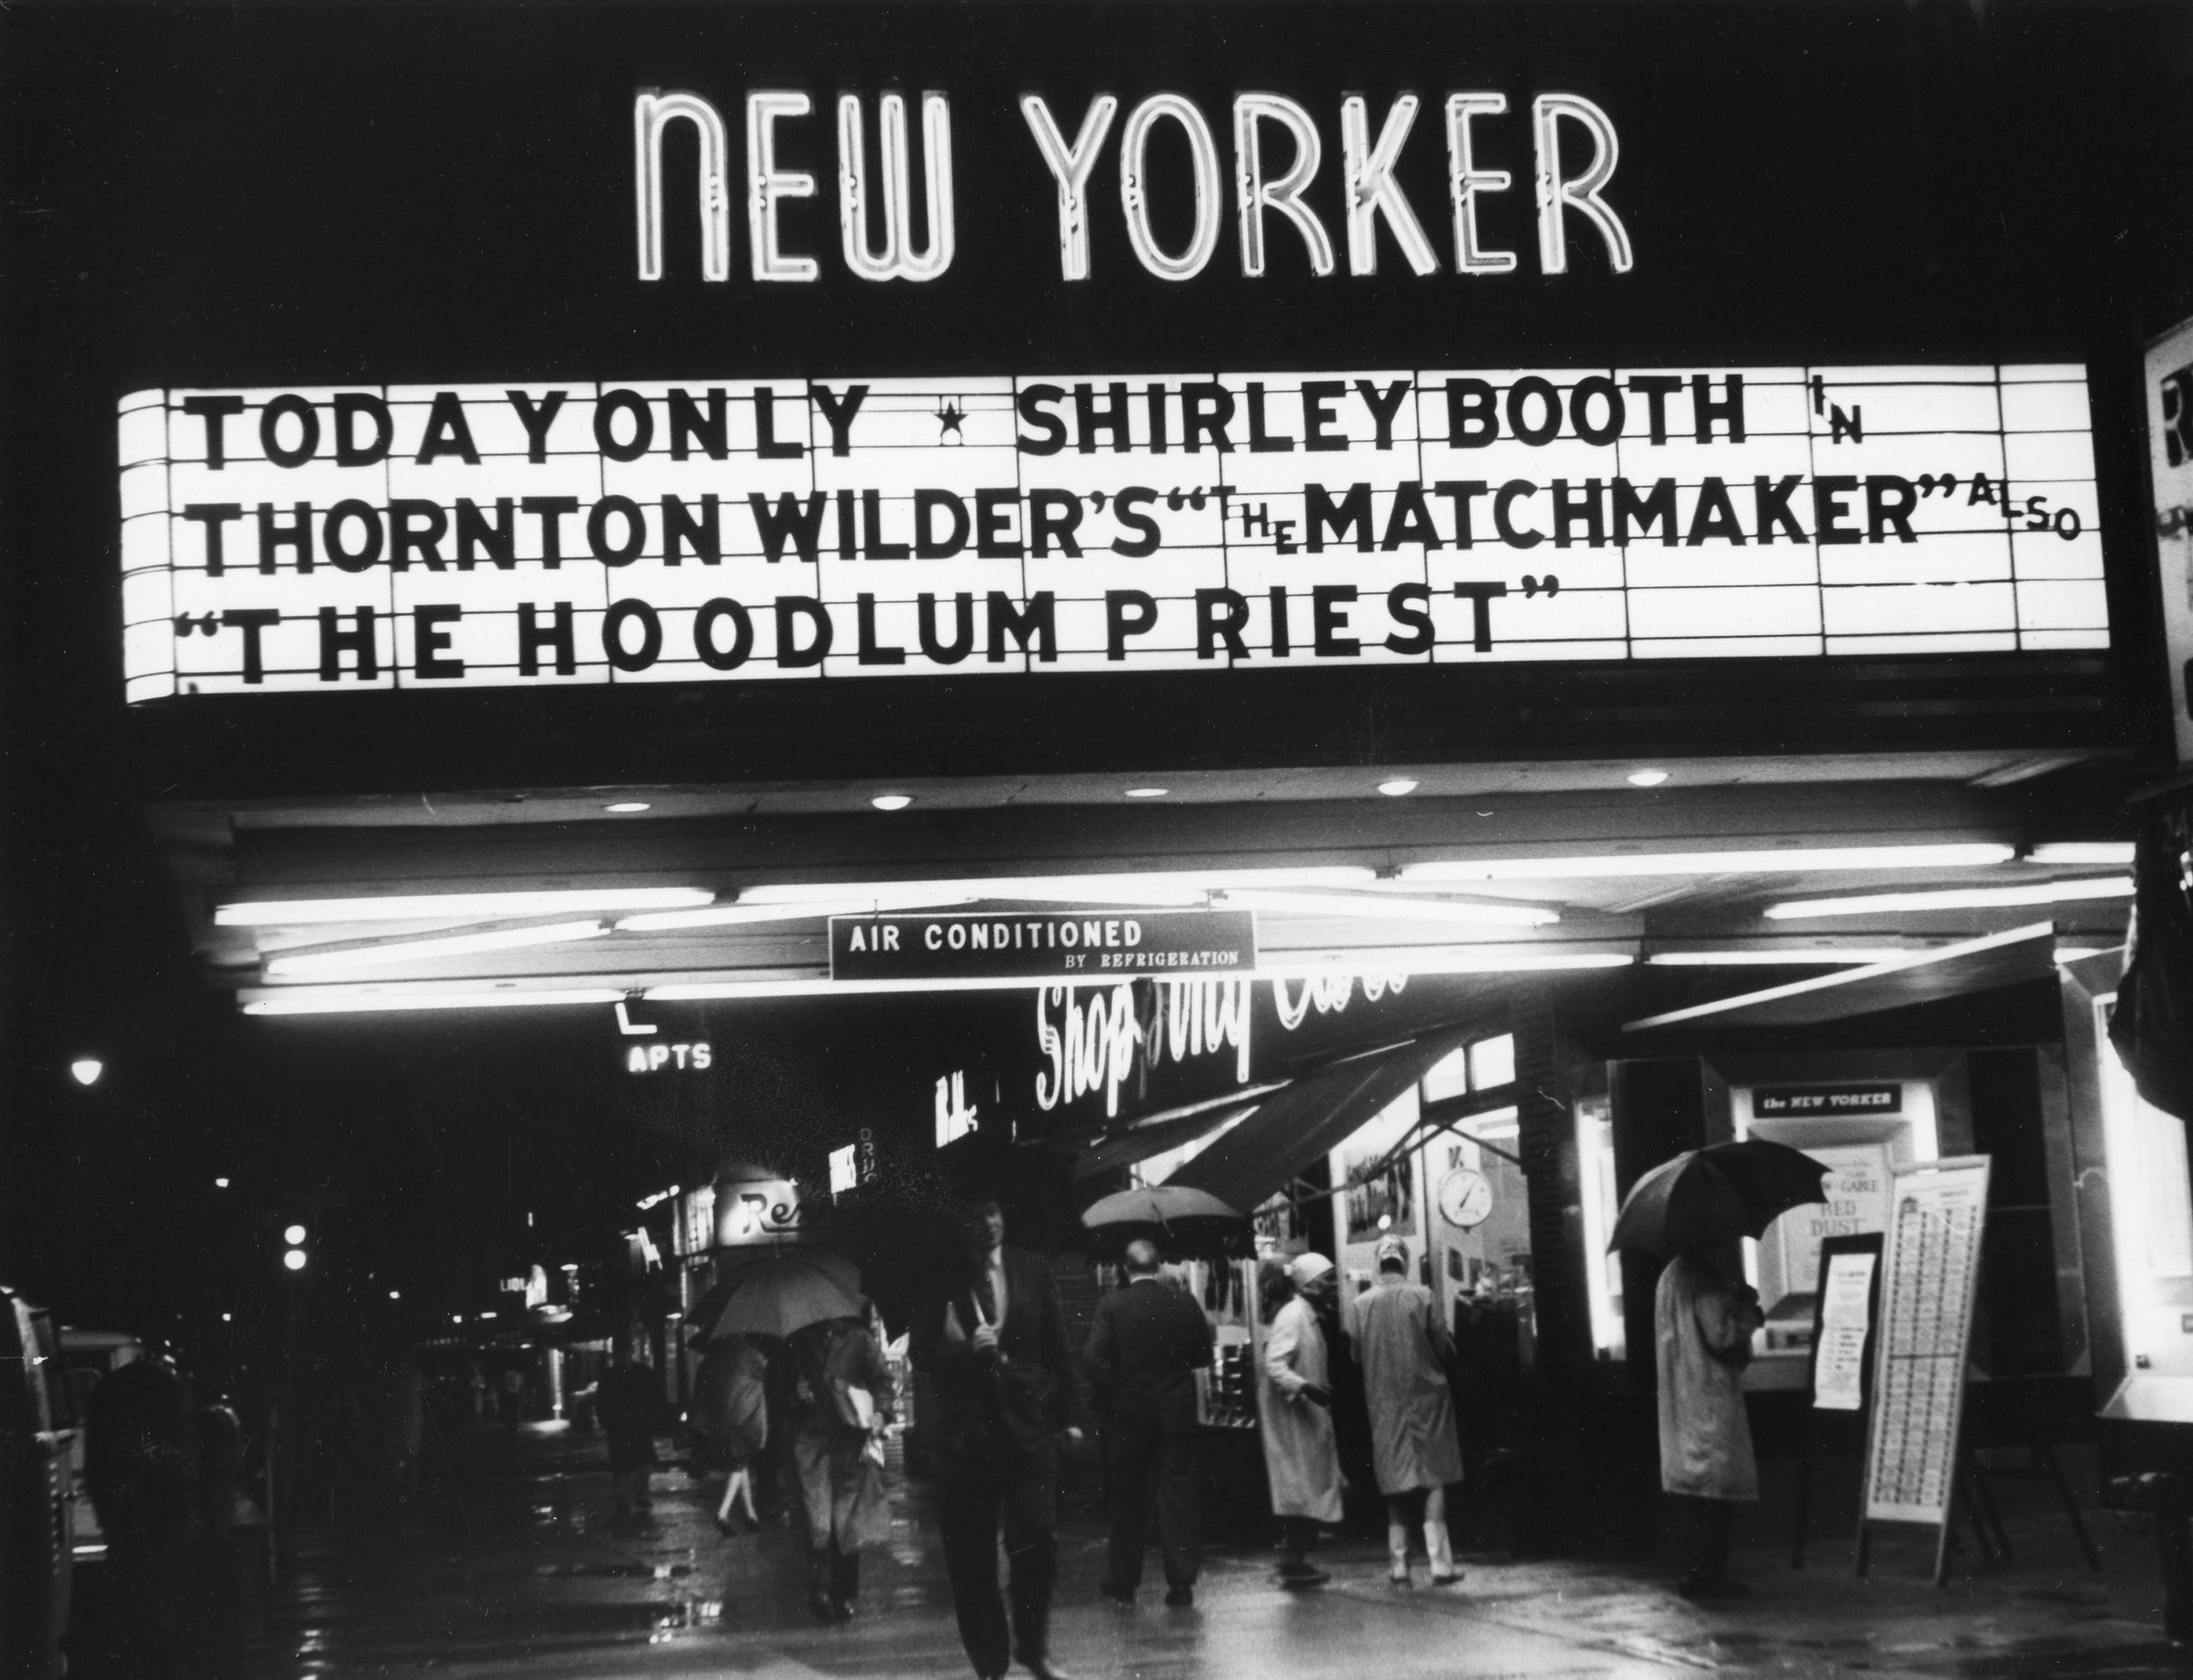 The New Yorker theater marquee. Photo courtesy of Photofest.